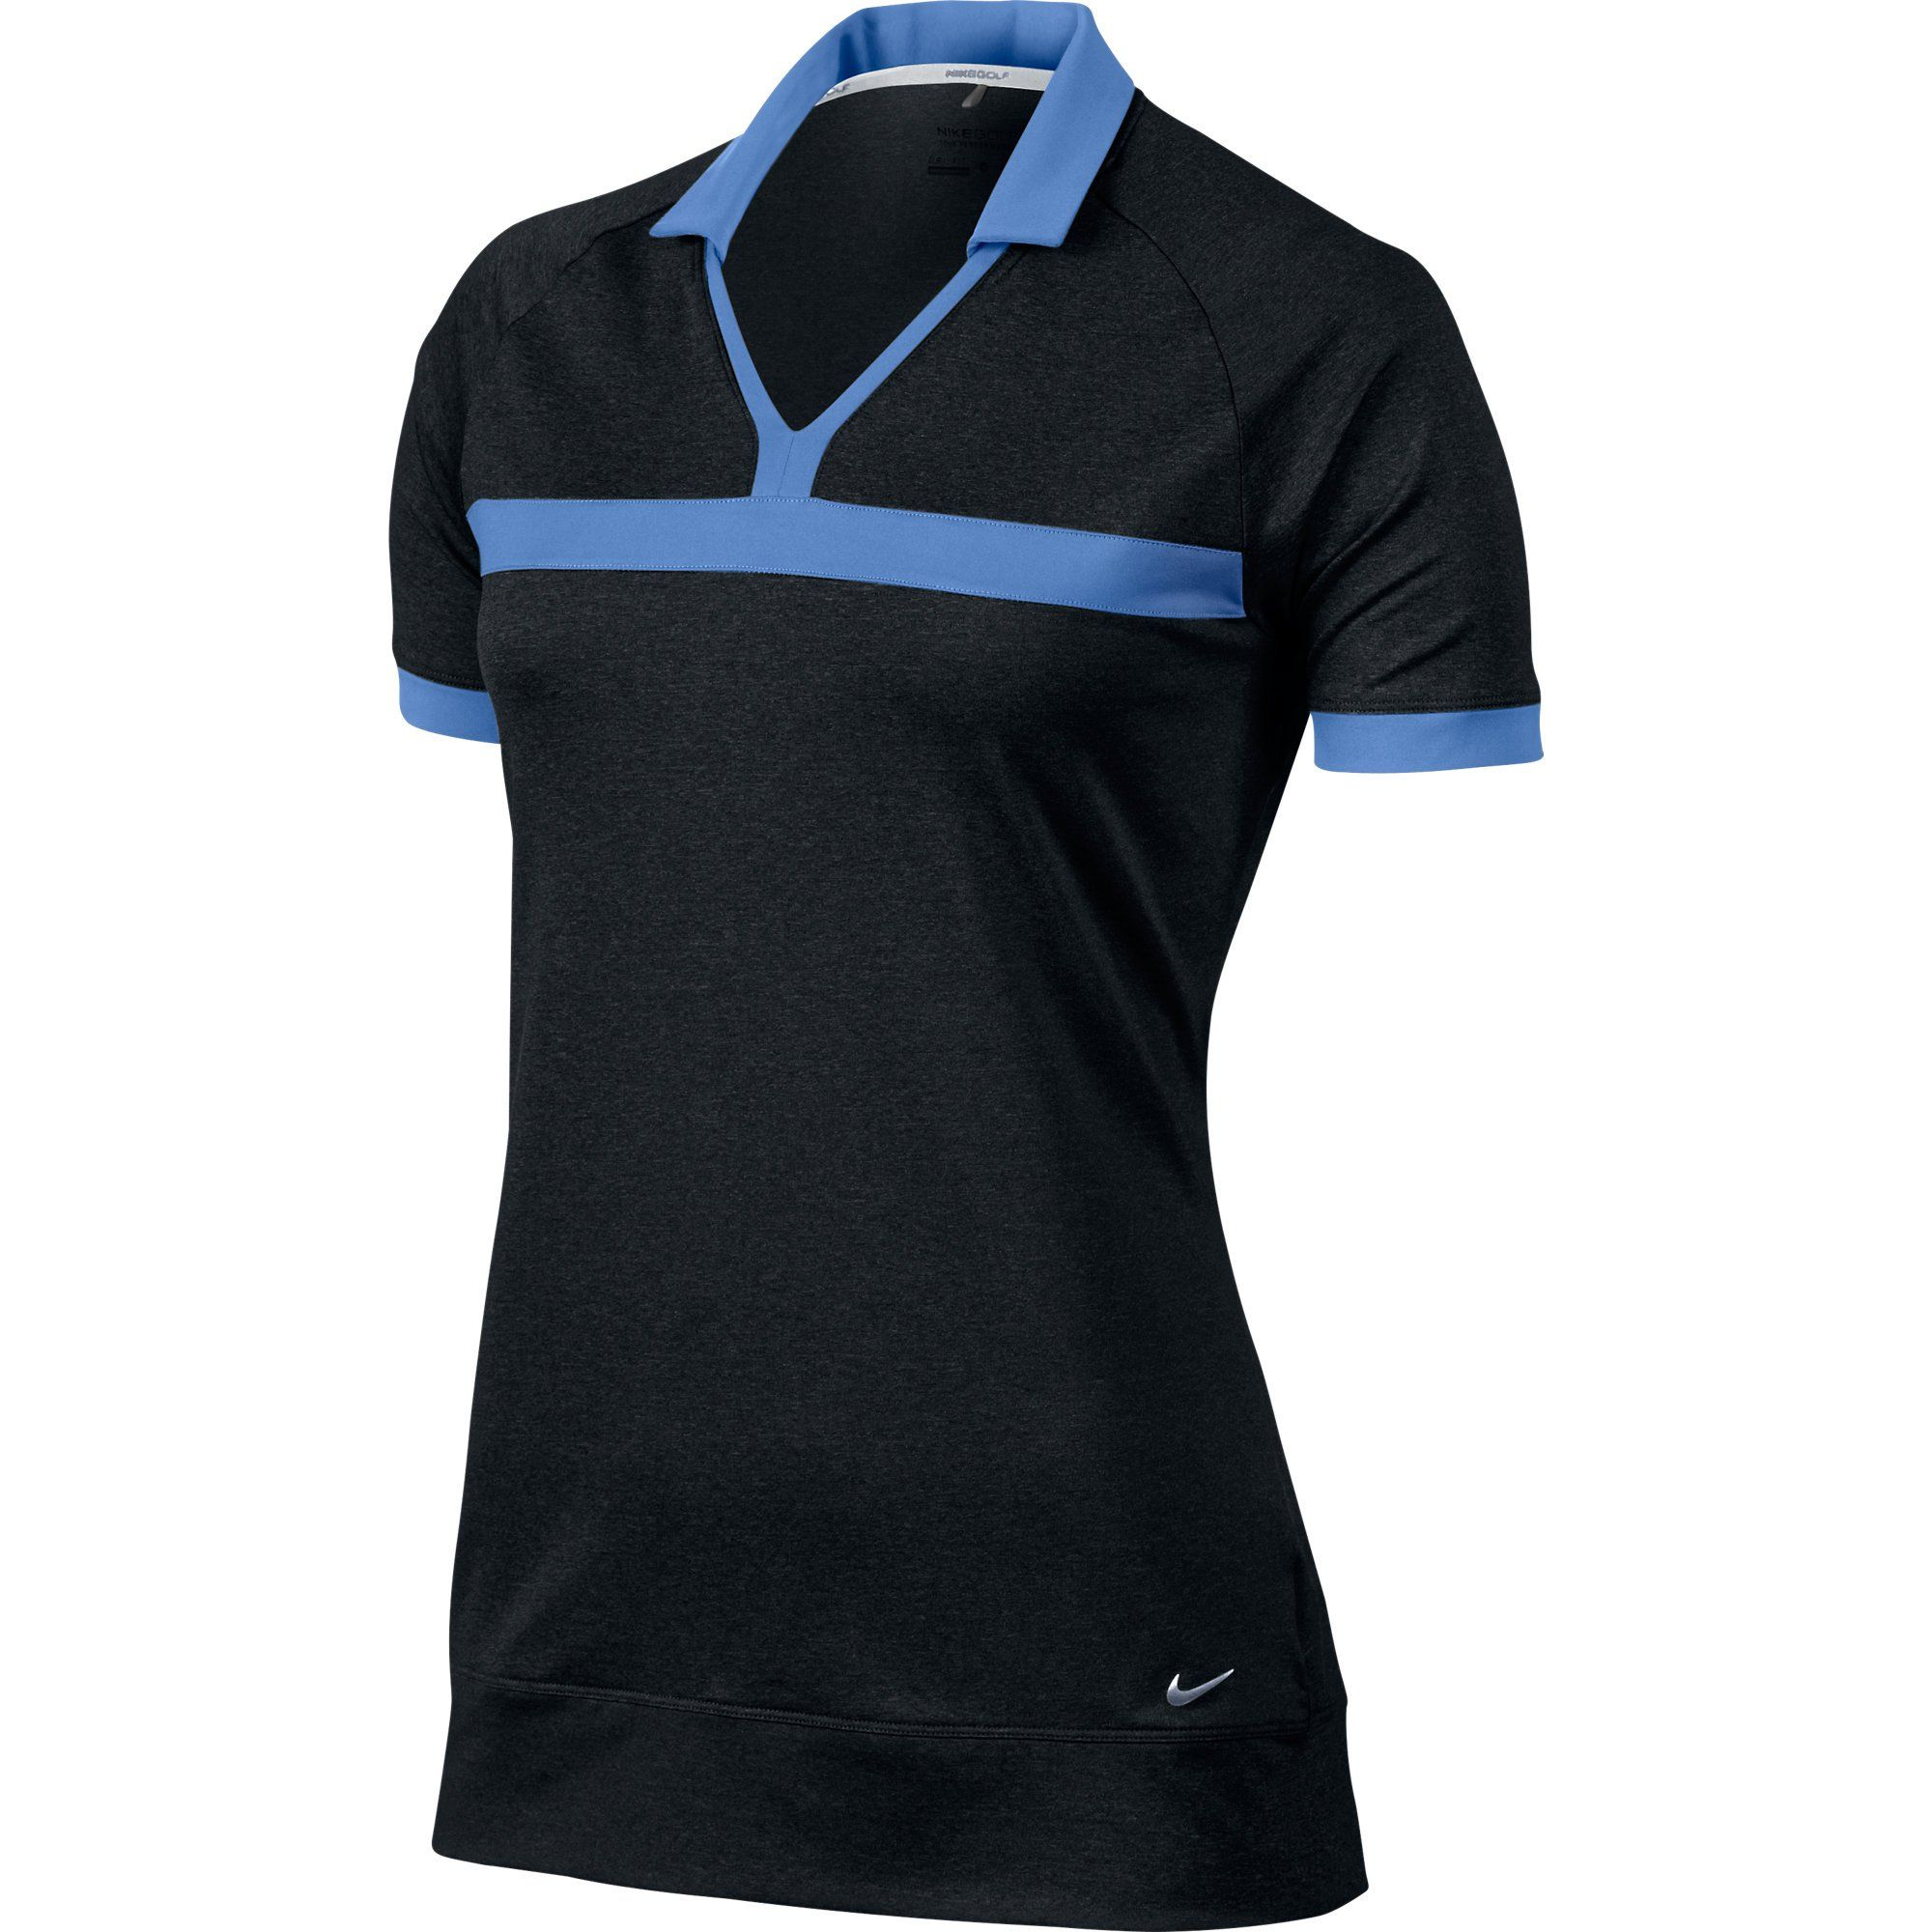 193aa99c4966 Womens Nike Dri-Fit Heather Tunic CLOSEOUT Golf Shirt. 100% polyester. Dri-Fit  material. Keeps you dry and comfortable.